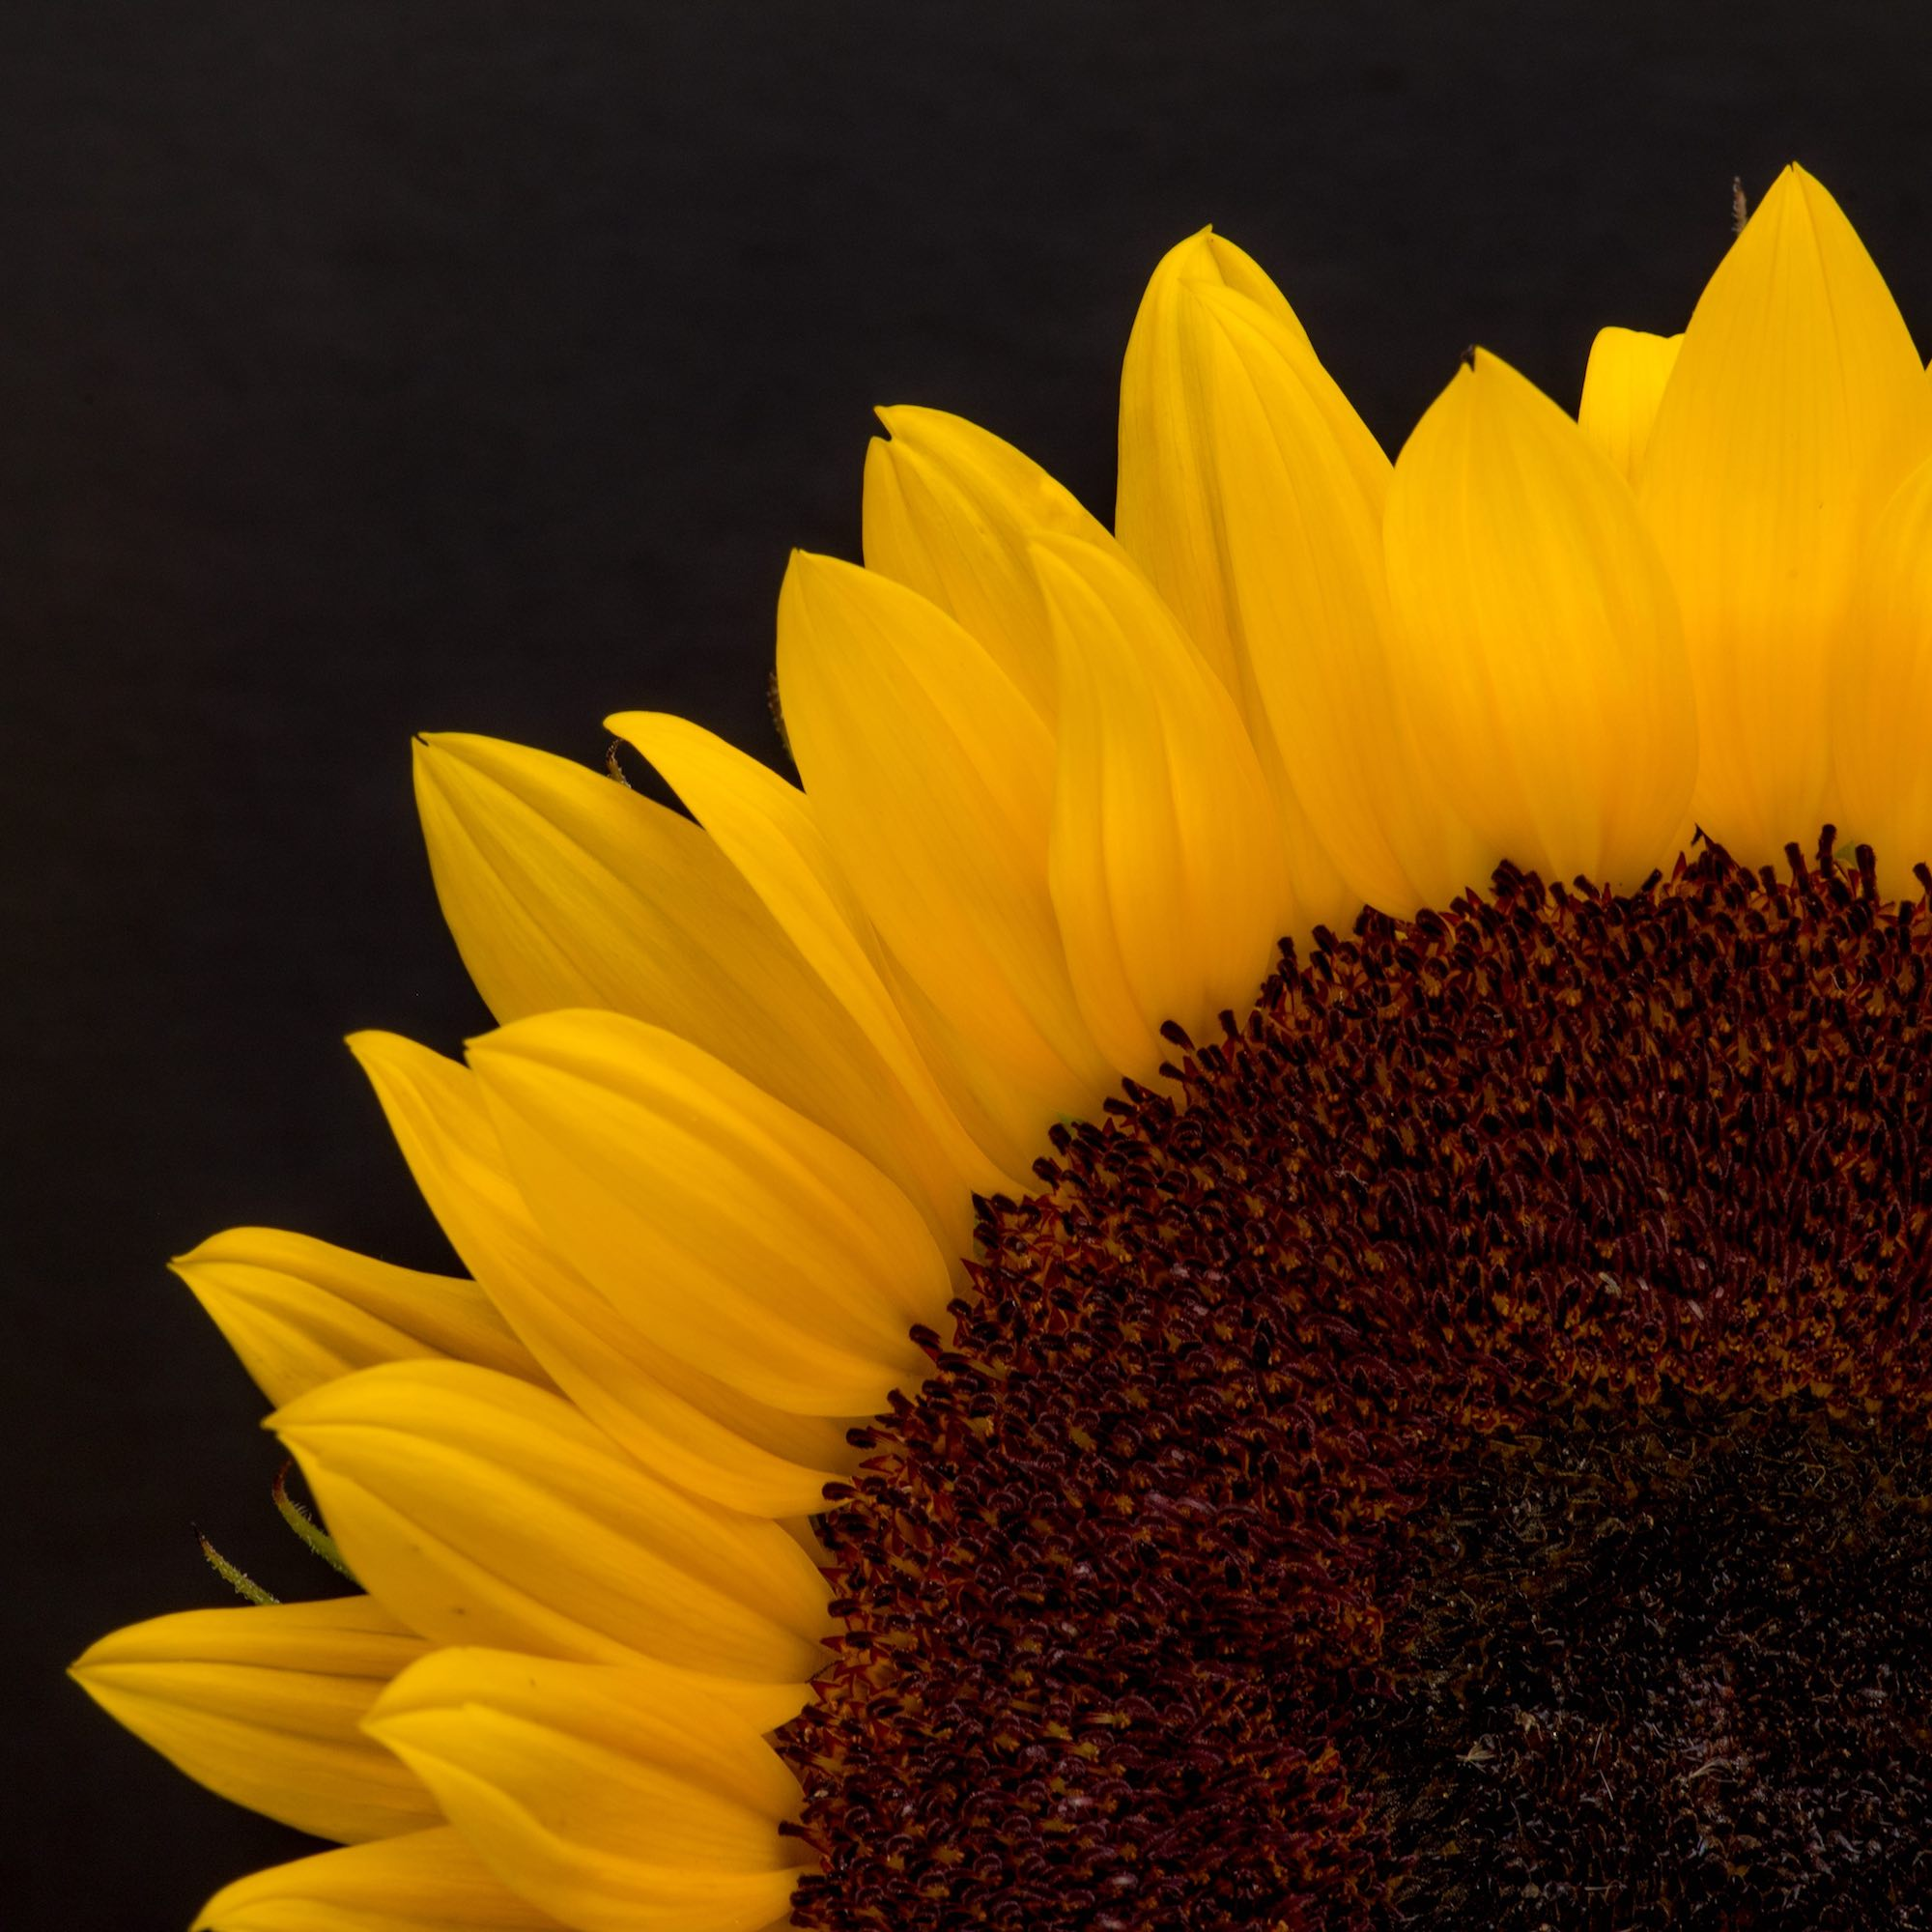 Sunflower II